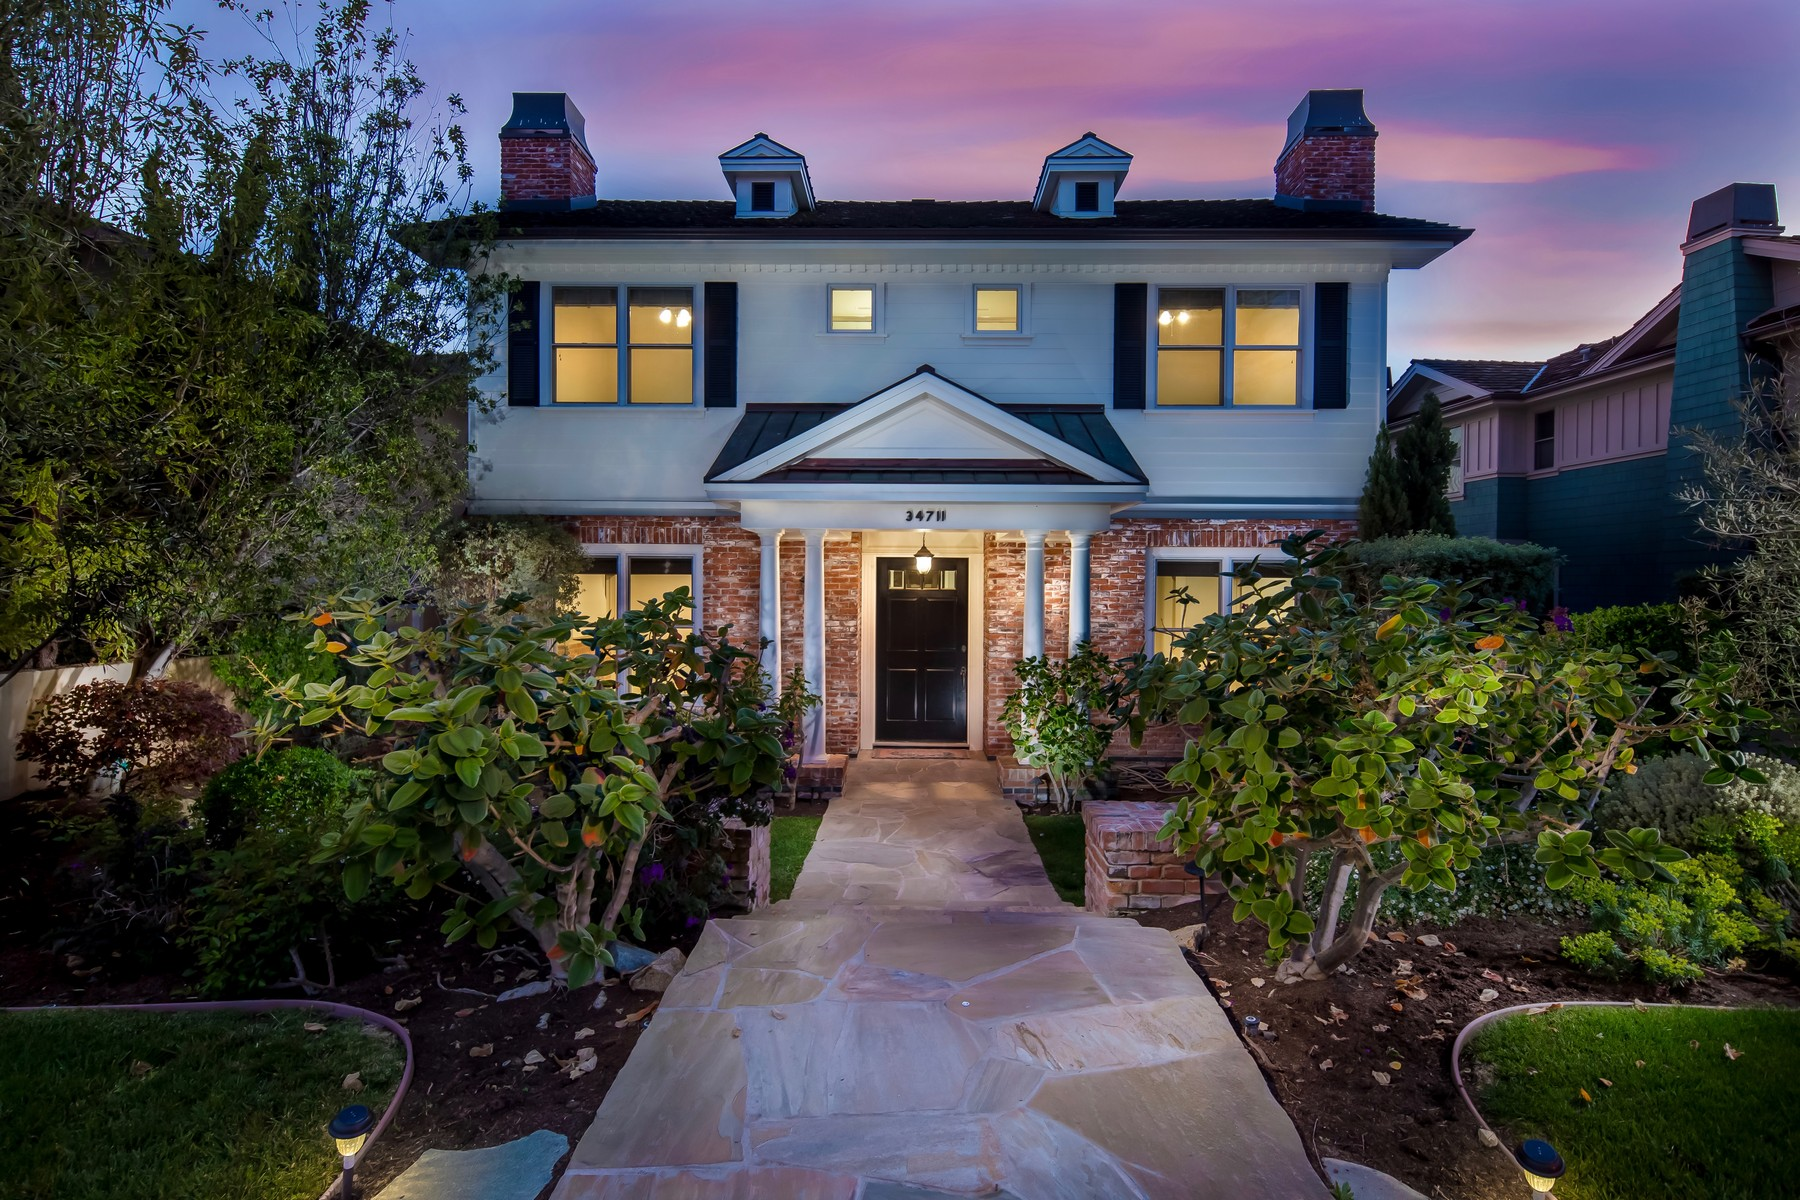 Single Family Home for Sale at 34711 Calle Loma Dana Point, California, 92624 United States